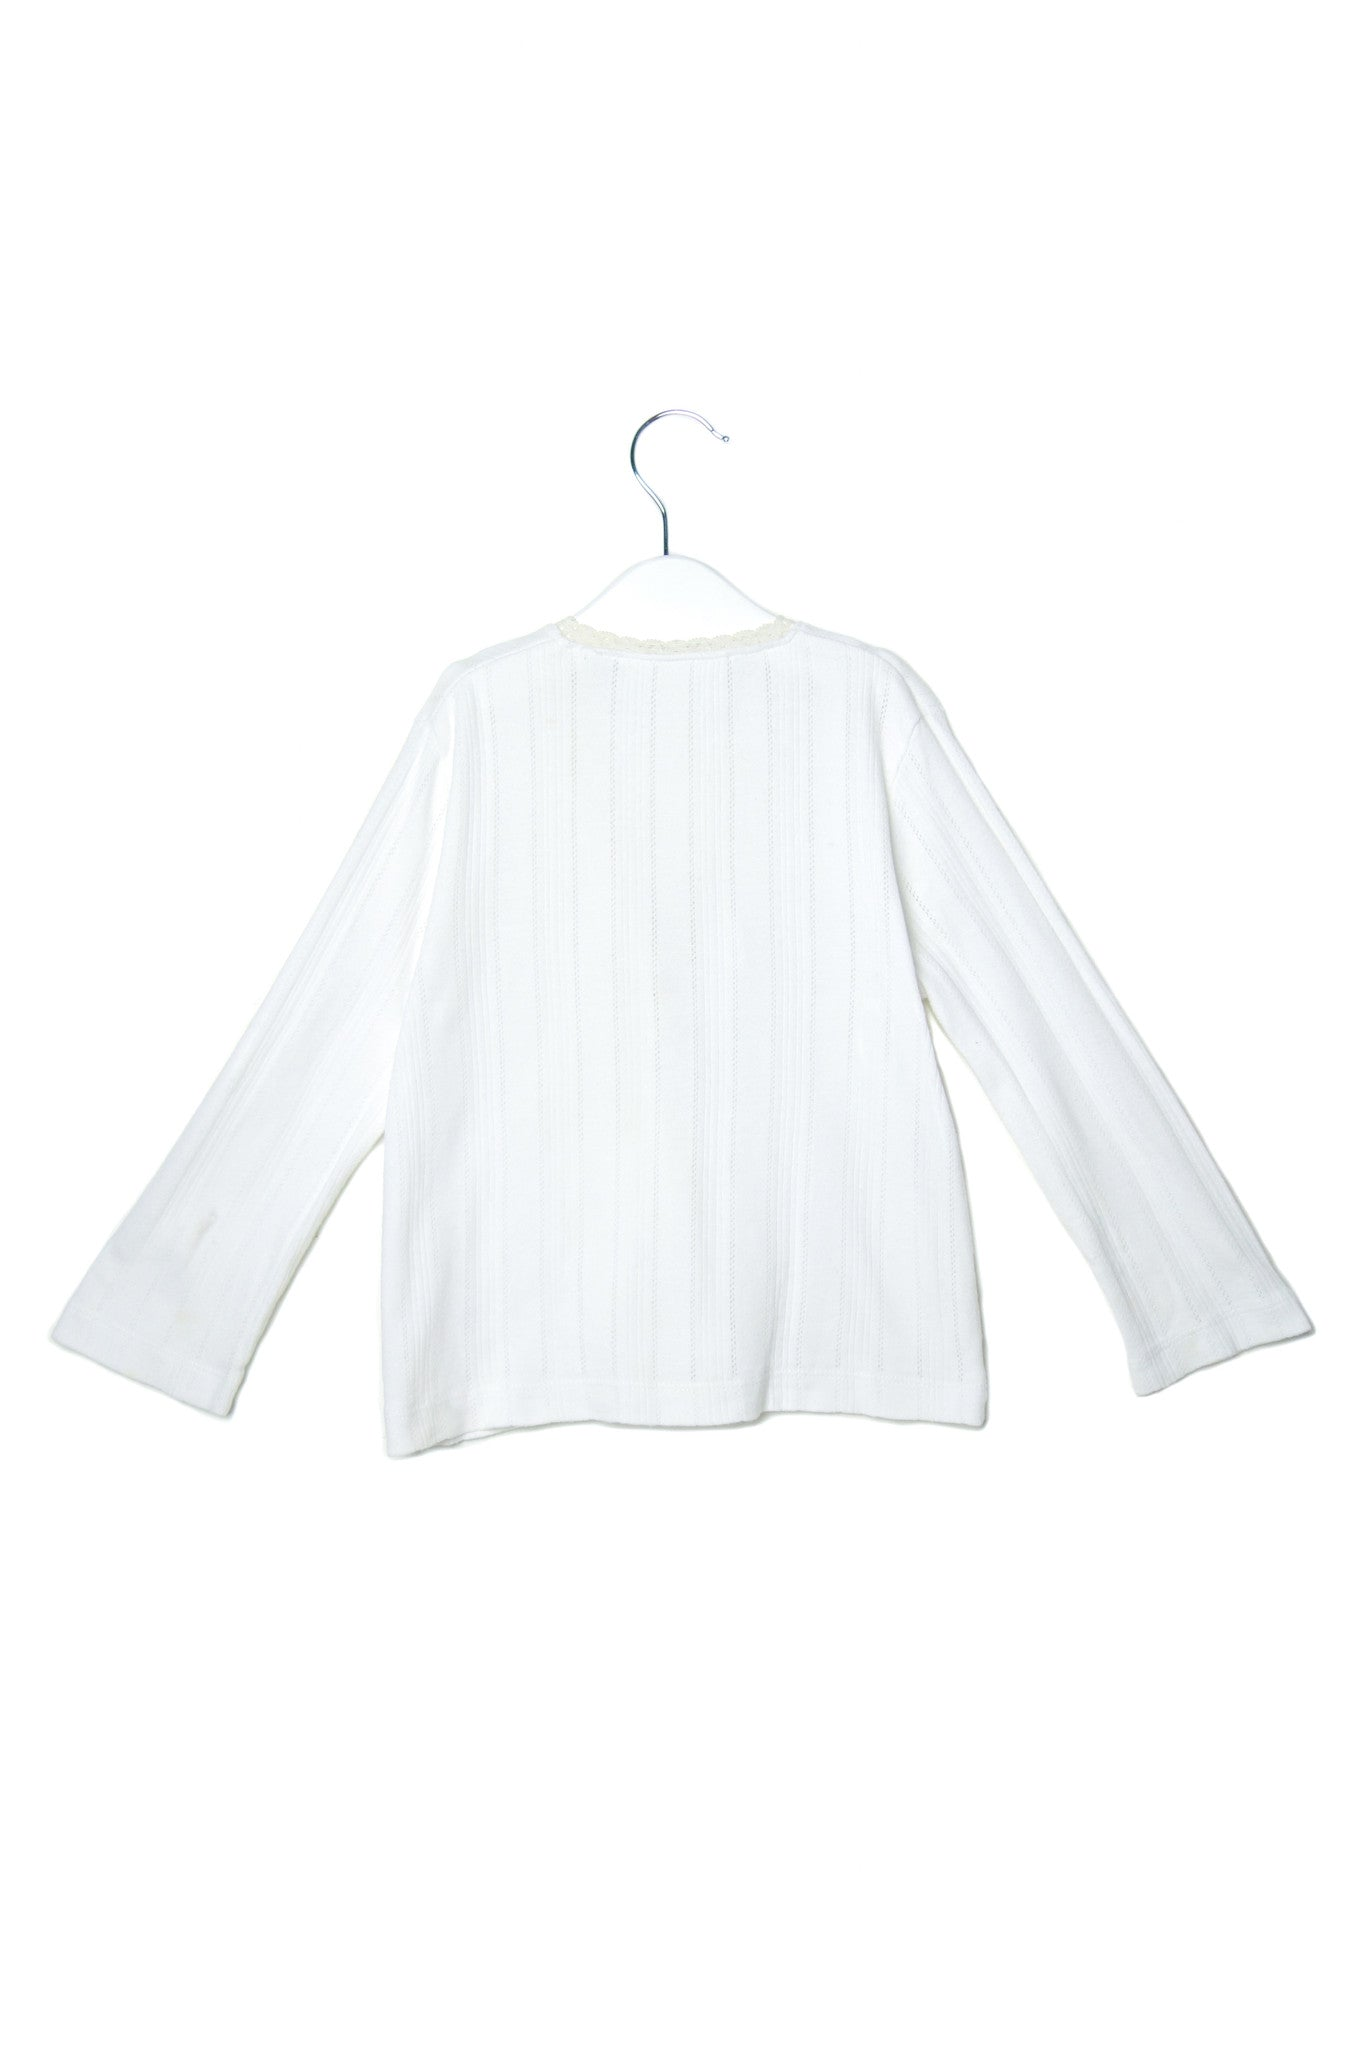 10001674 The Little White Company Kids~Cardigan 3-4T at Retykle